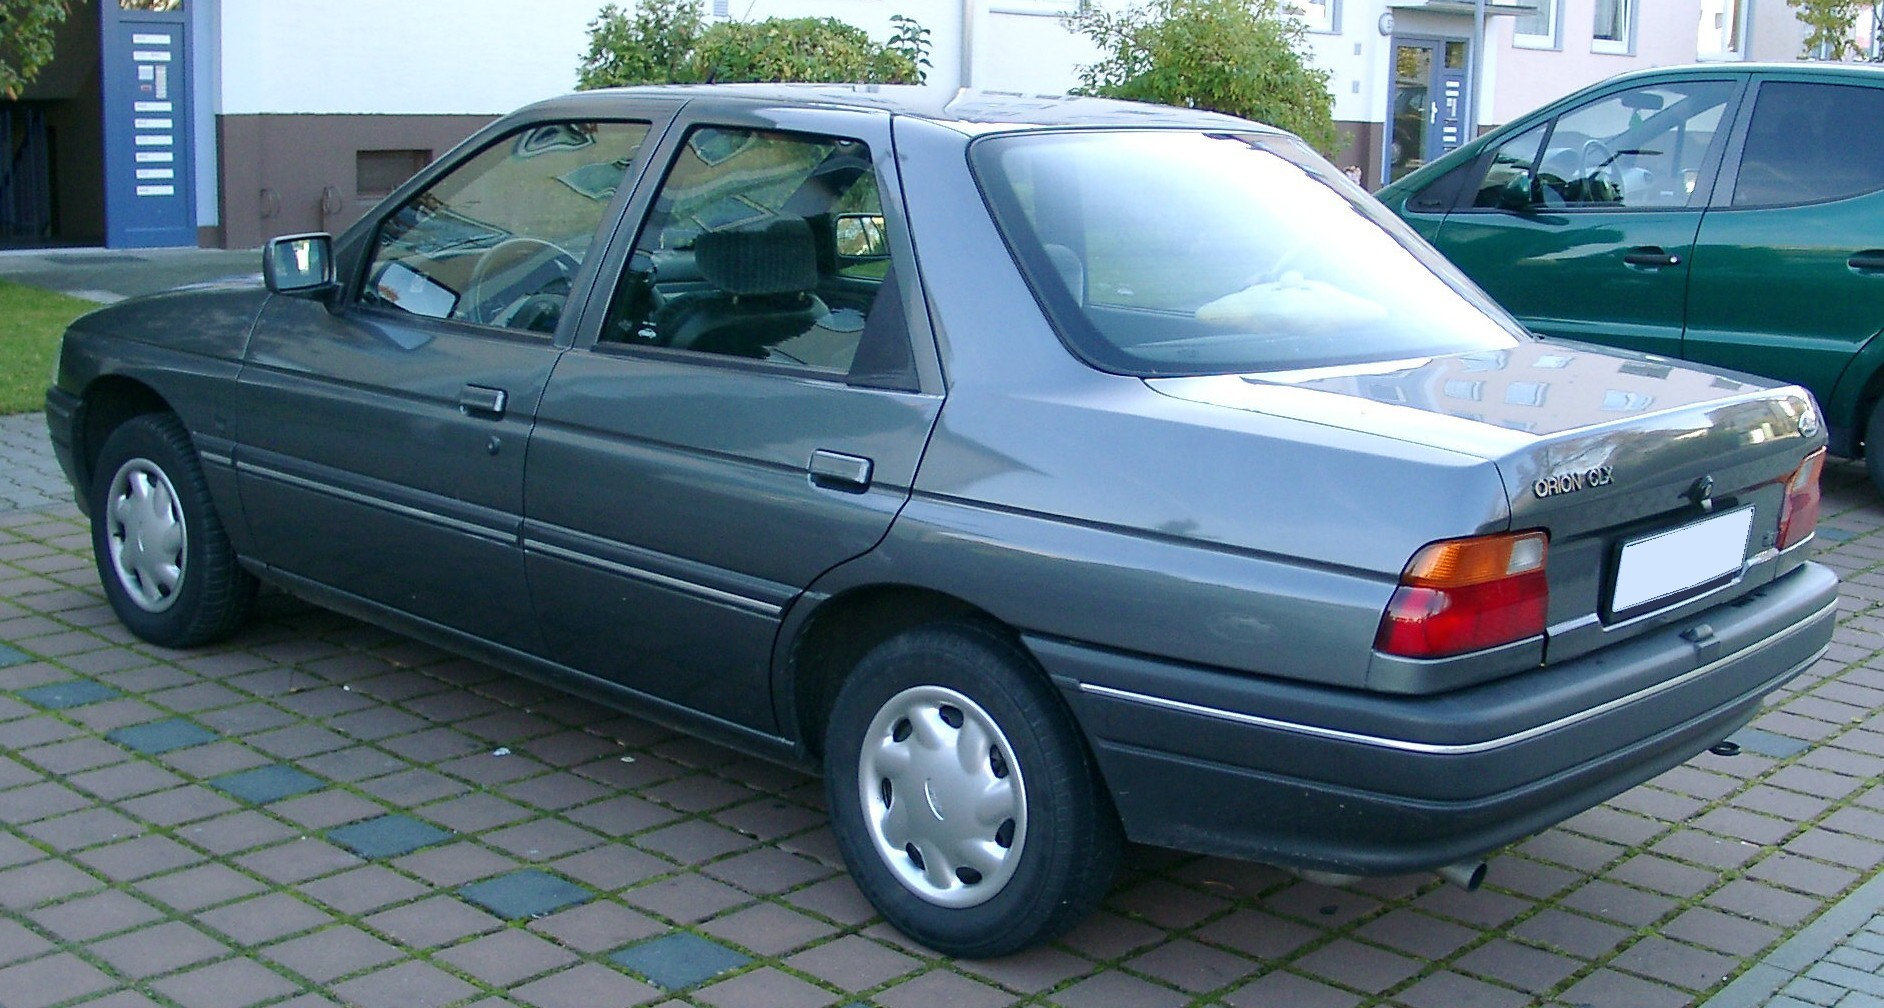 1991 Ford Orion #2